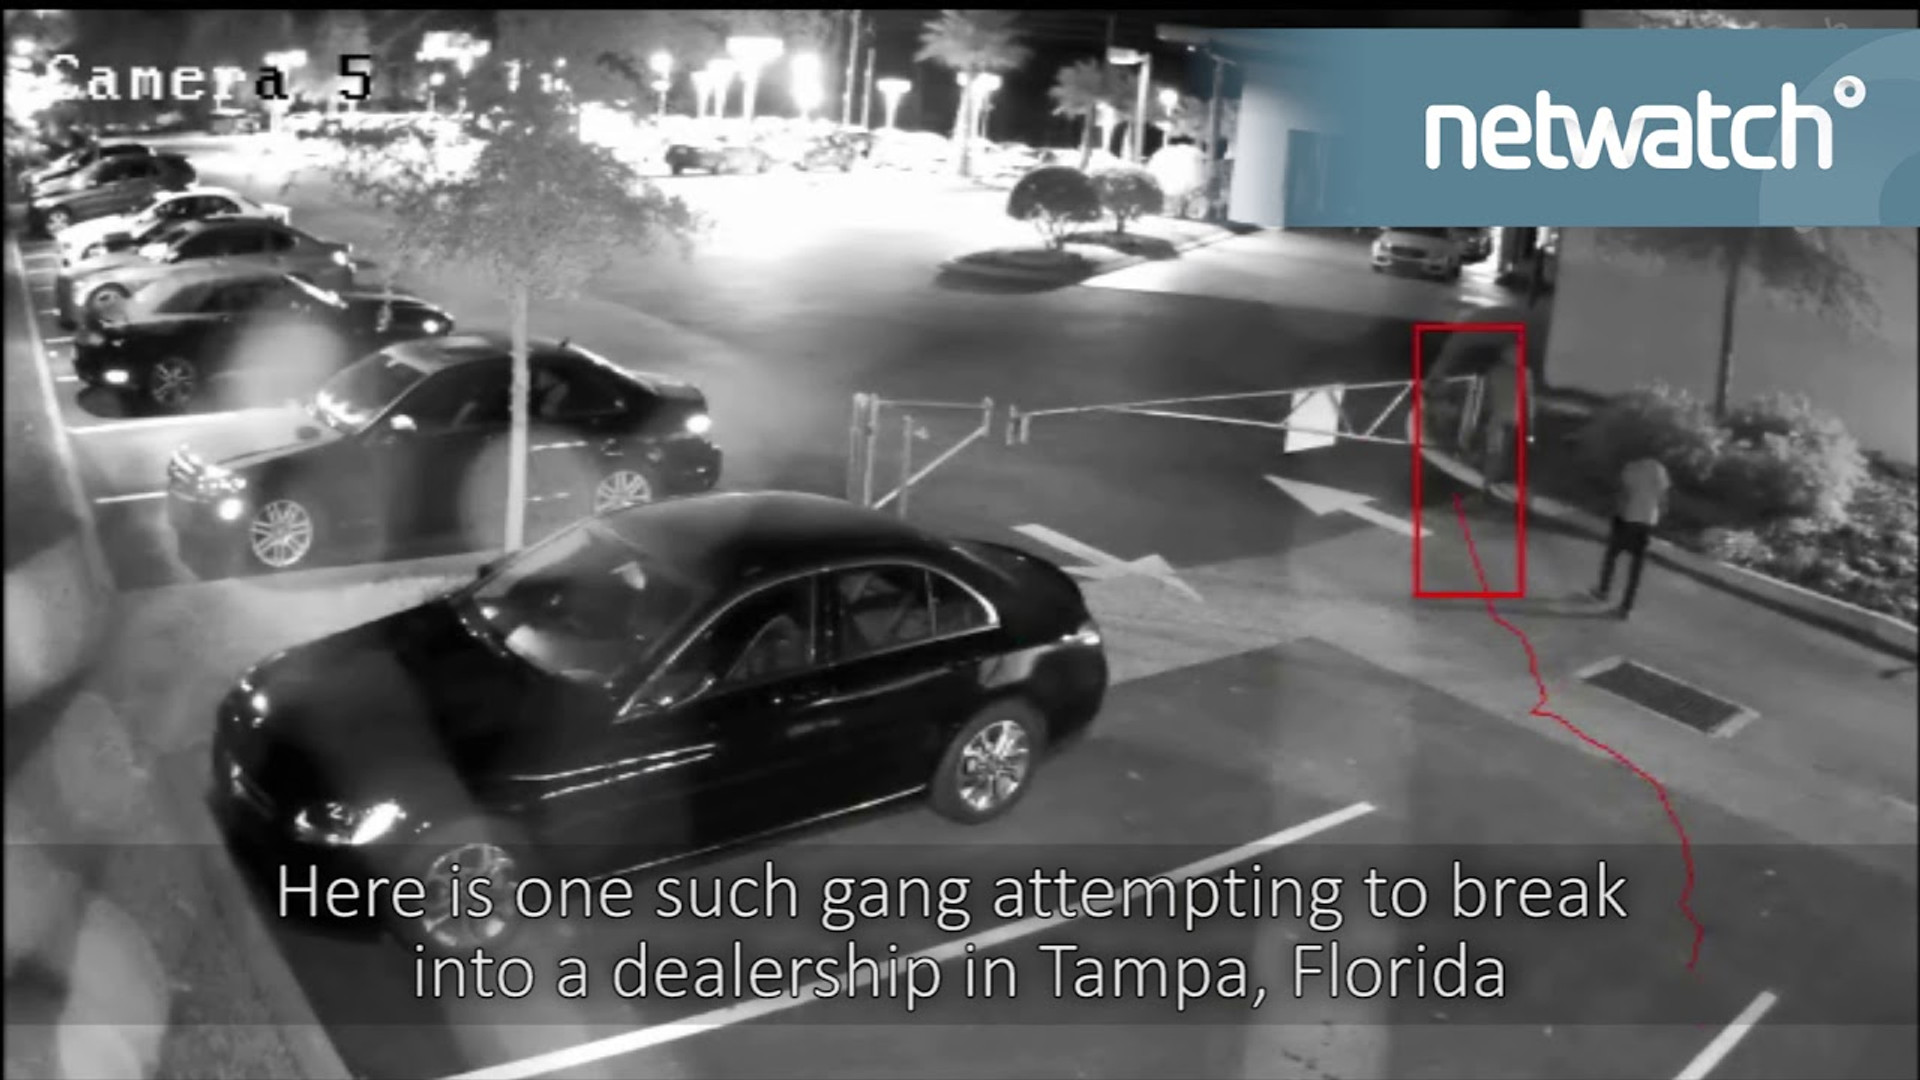 Netwatch In Action - Intruders attempting to steal cars from auto dealership